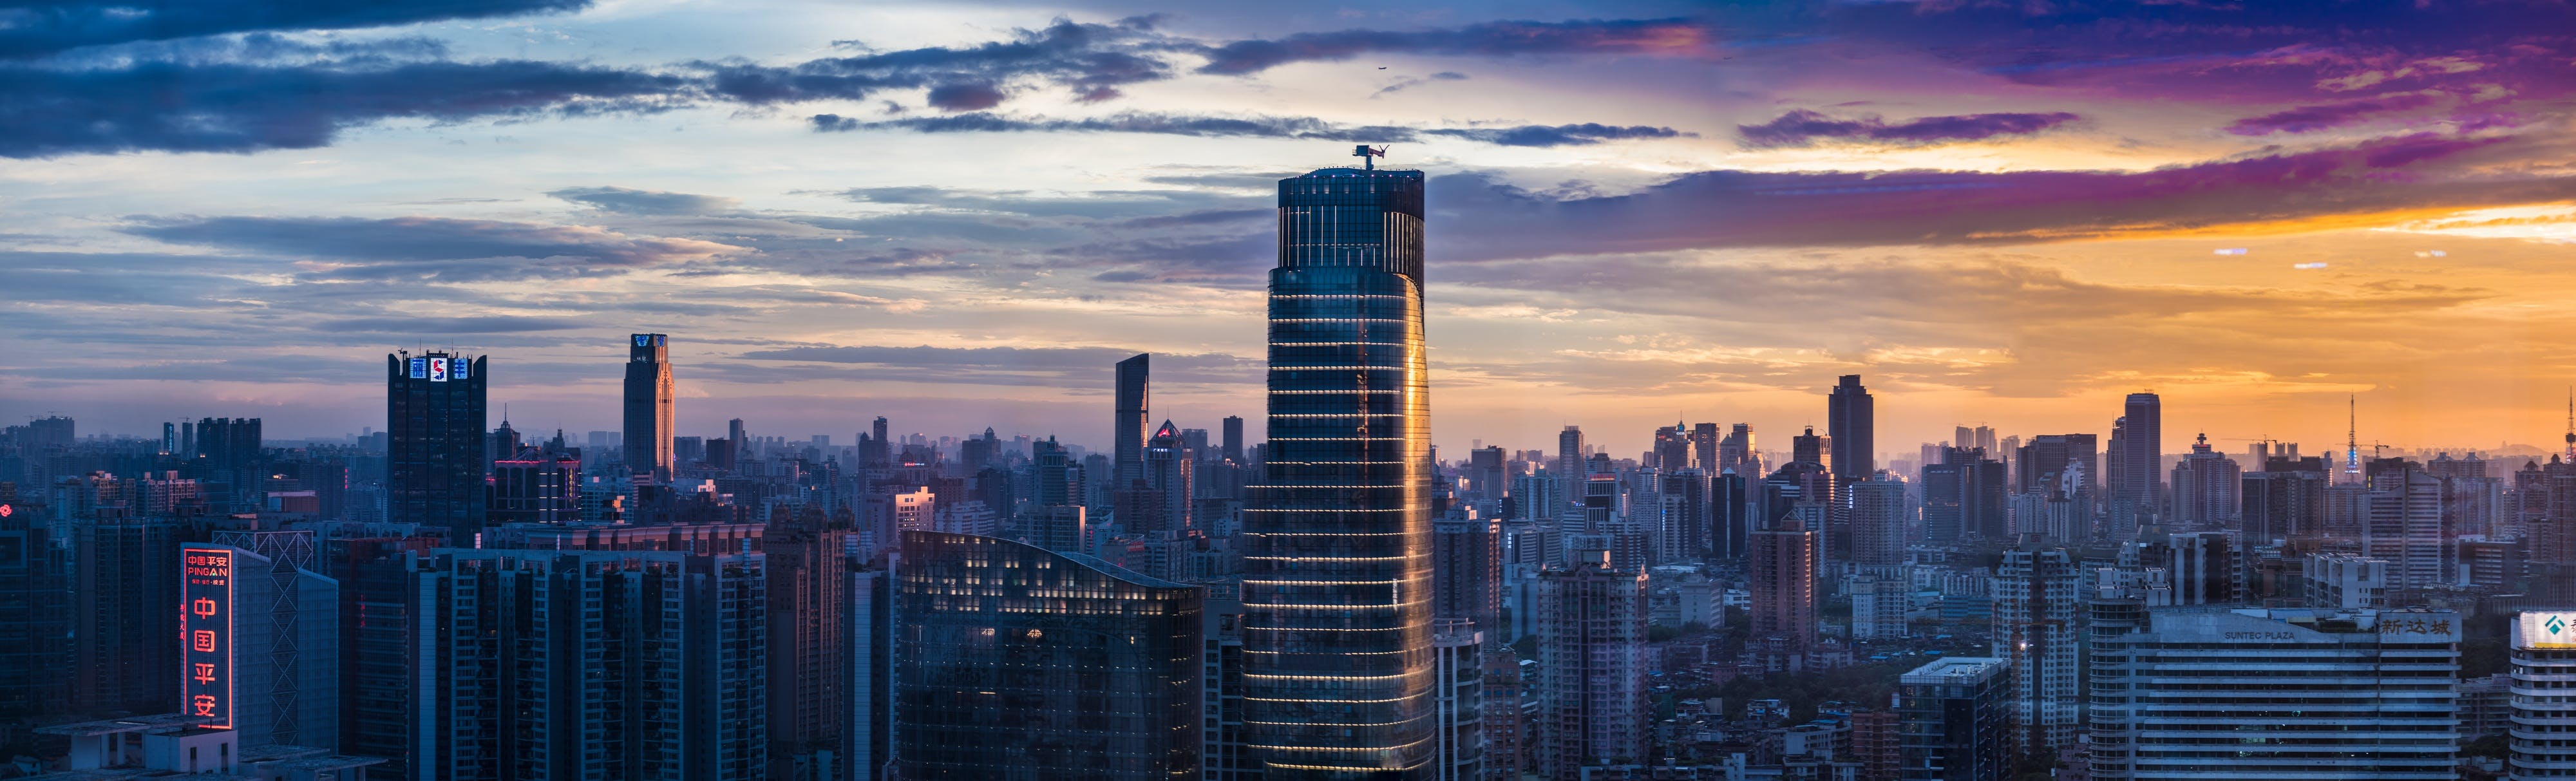 Panoramic Photography of High-rise Buildings during Orange Sunset